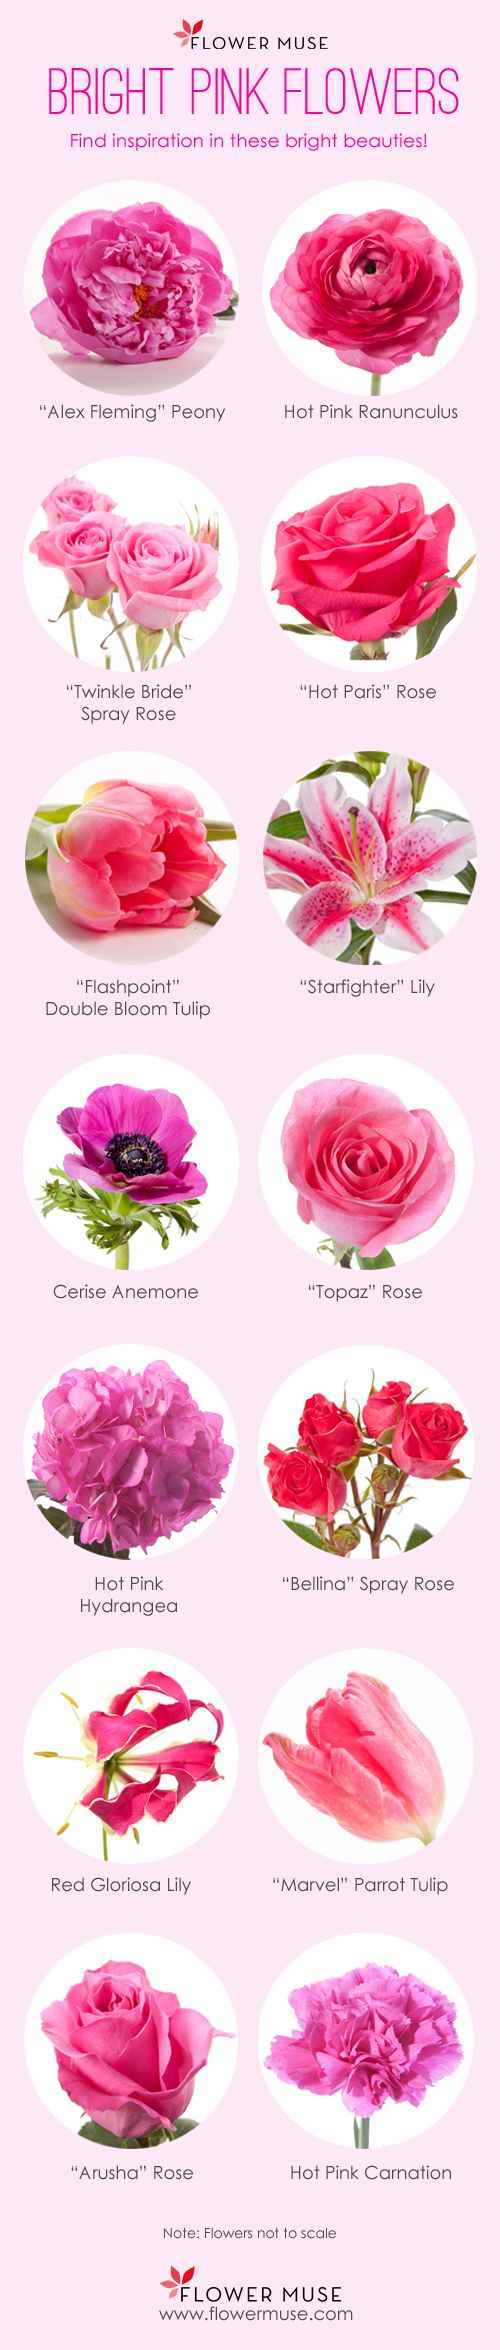 Our Favorite: Bright Pink Flowers on Flower Muse Blog